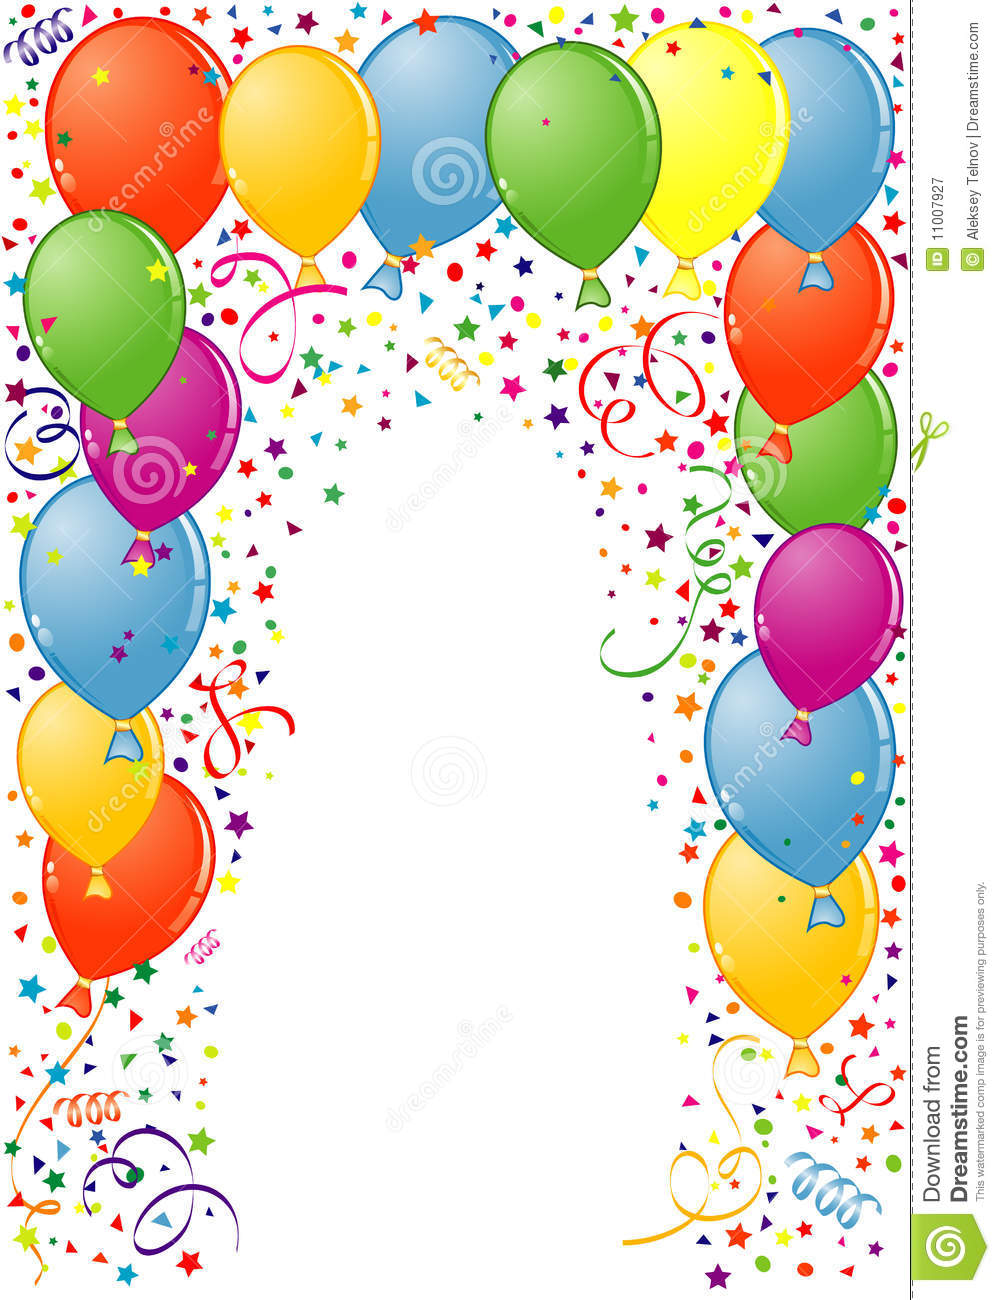 Birthday Frame stock vector. Illustration of anniversary - 11007927